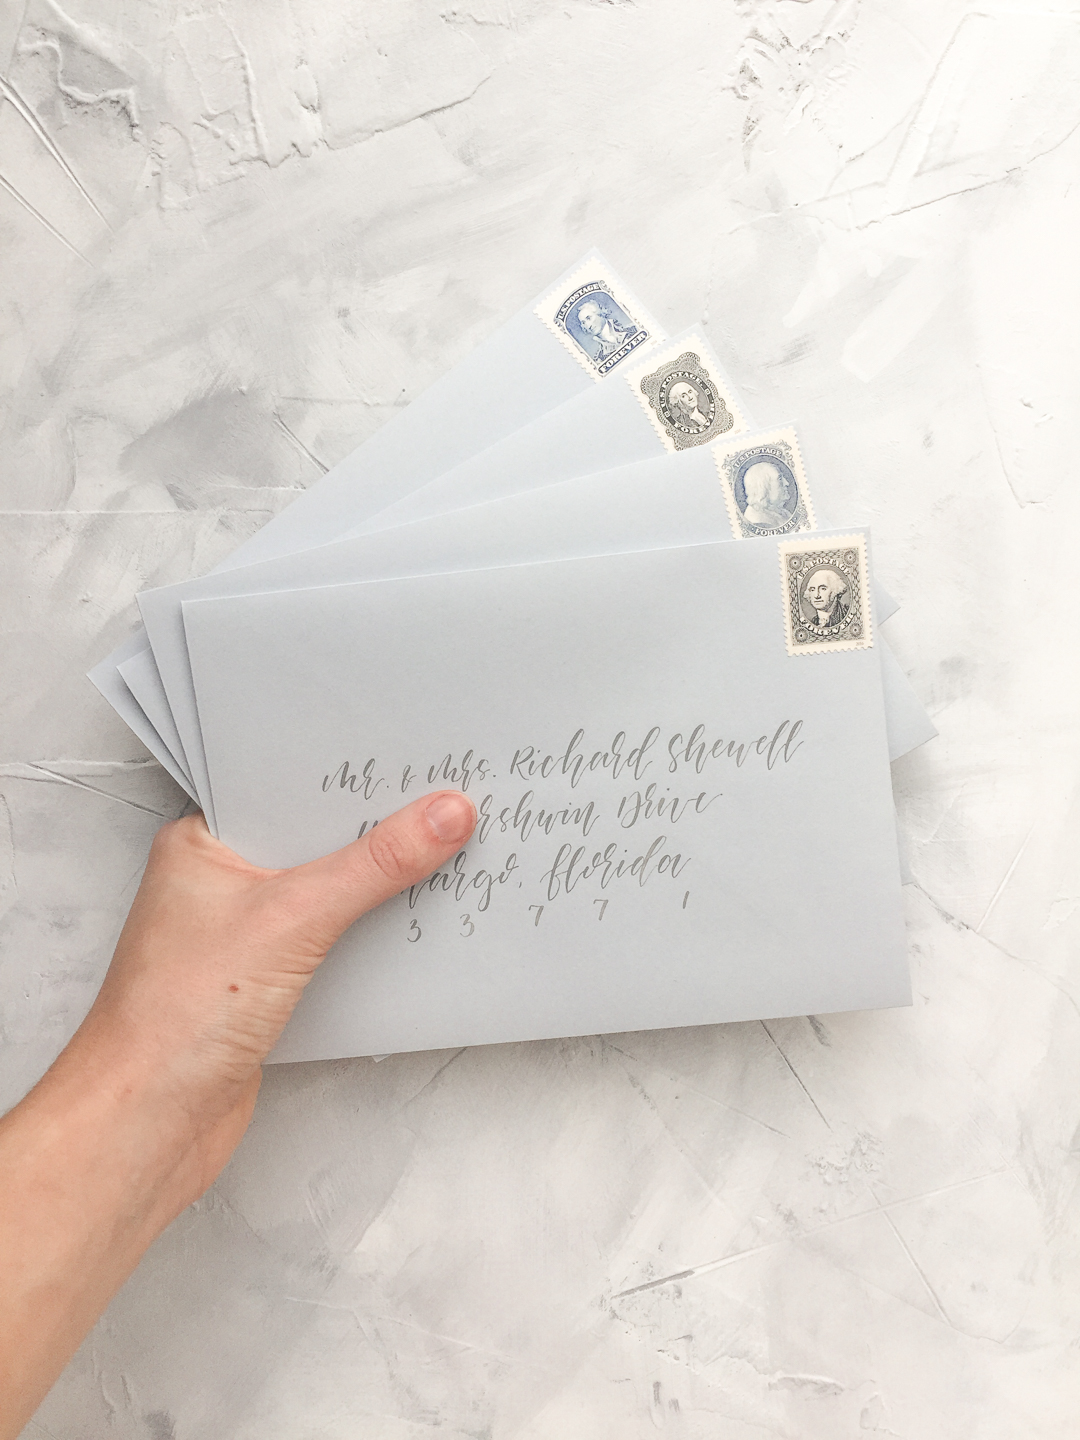 It's daunting to know how to address wedding invitations. I can help you make sure all of your guests feel welcomed!